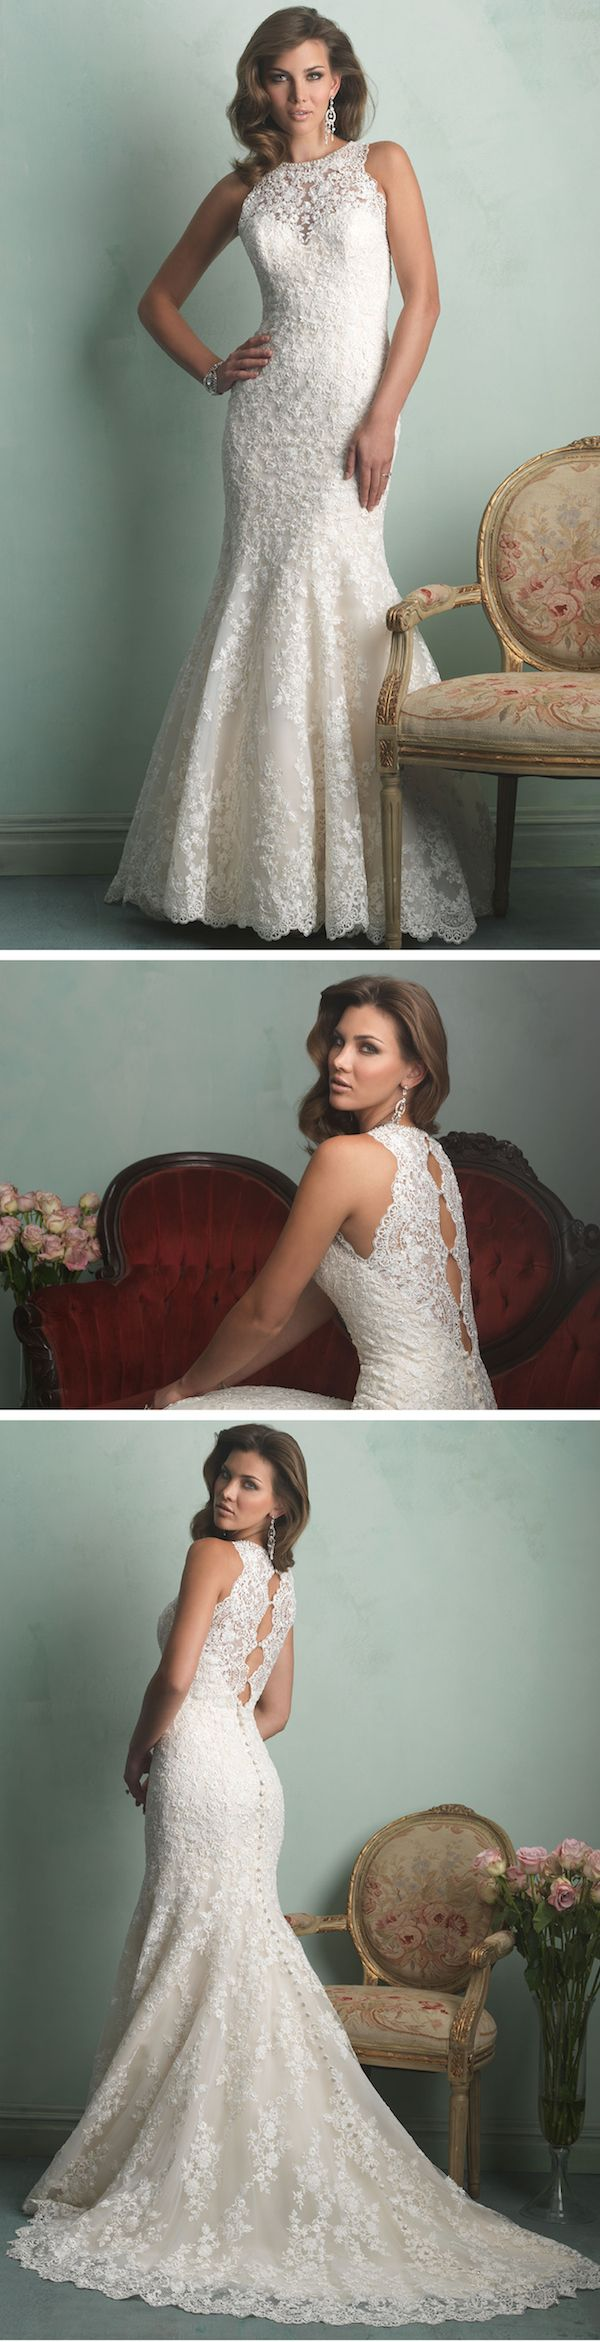 Allure 9154 wedding dresses indianale salon bridal for Wedding dress boutiques chicago